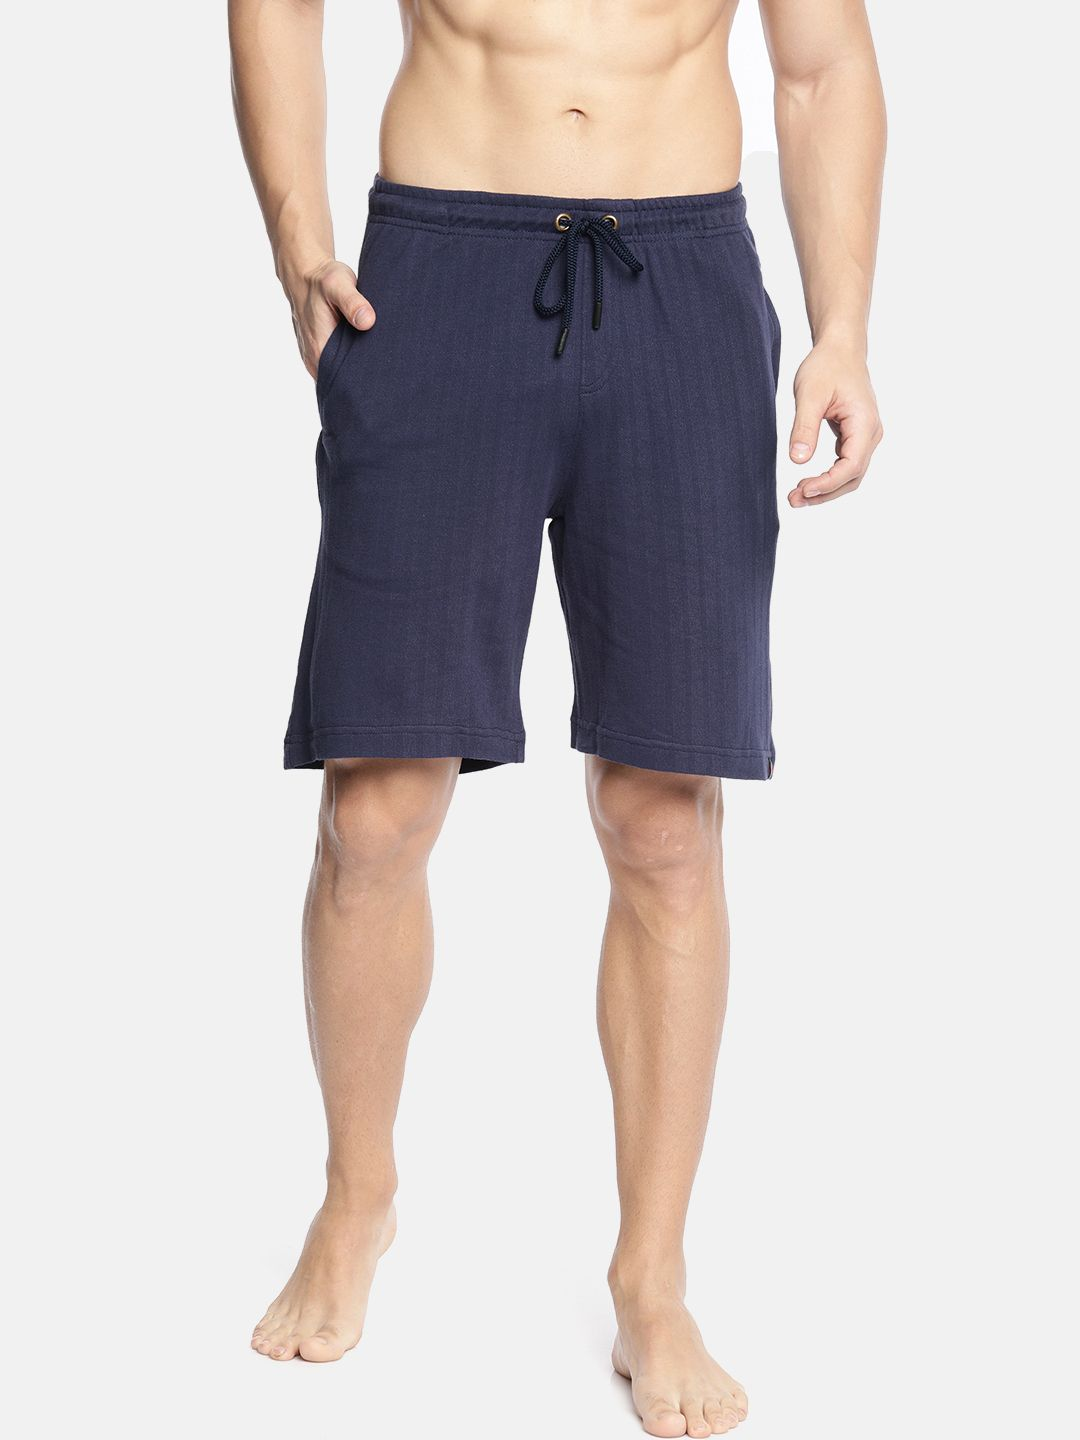 The Bareblow Blue Everyday Shorts